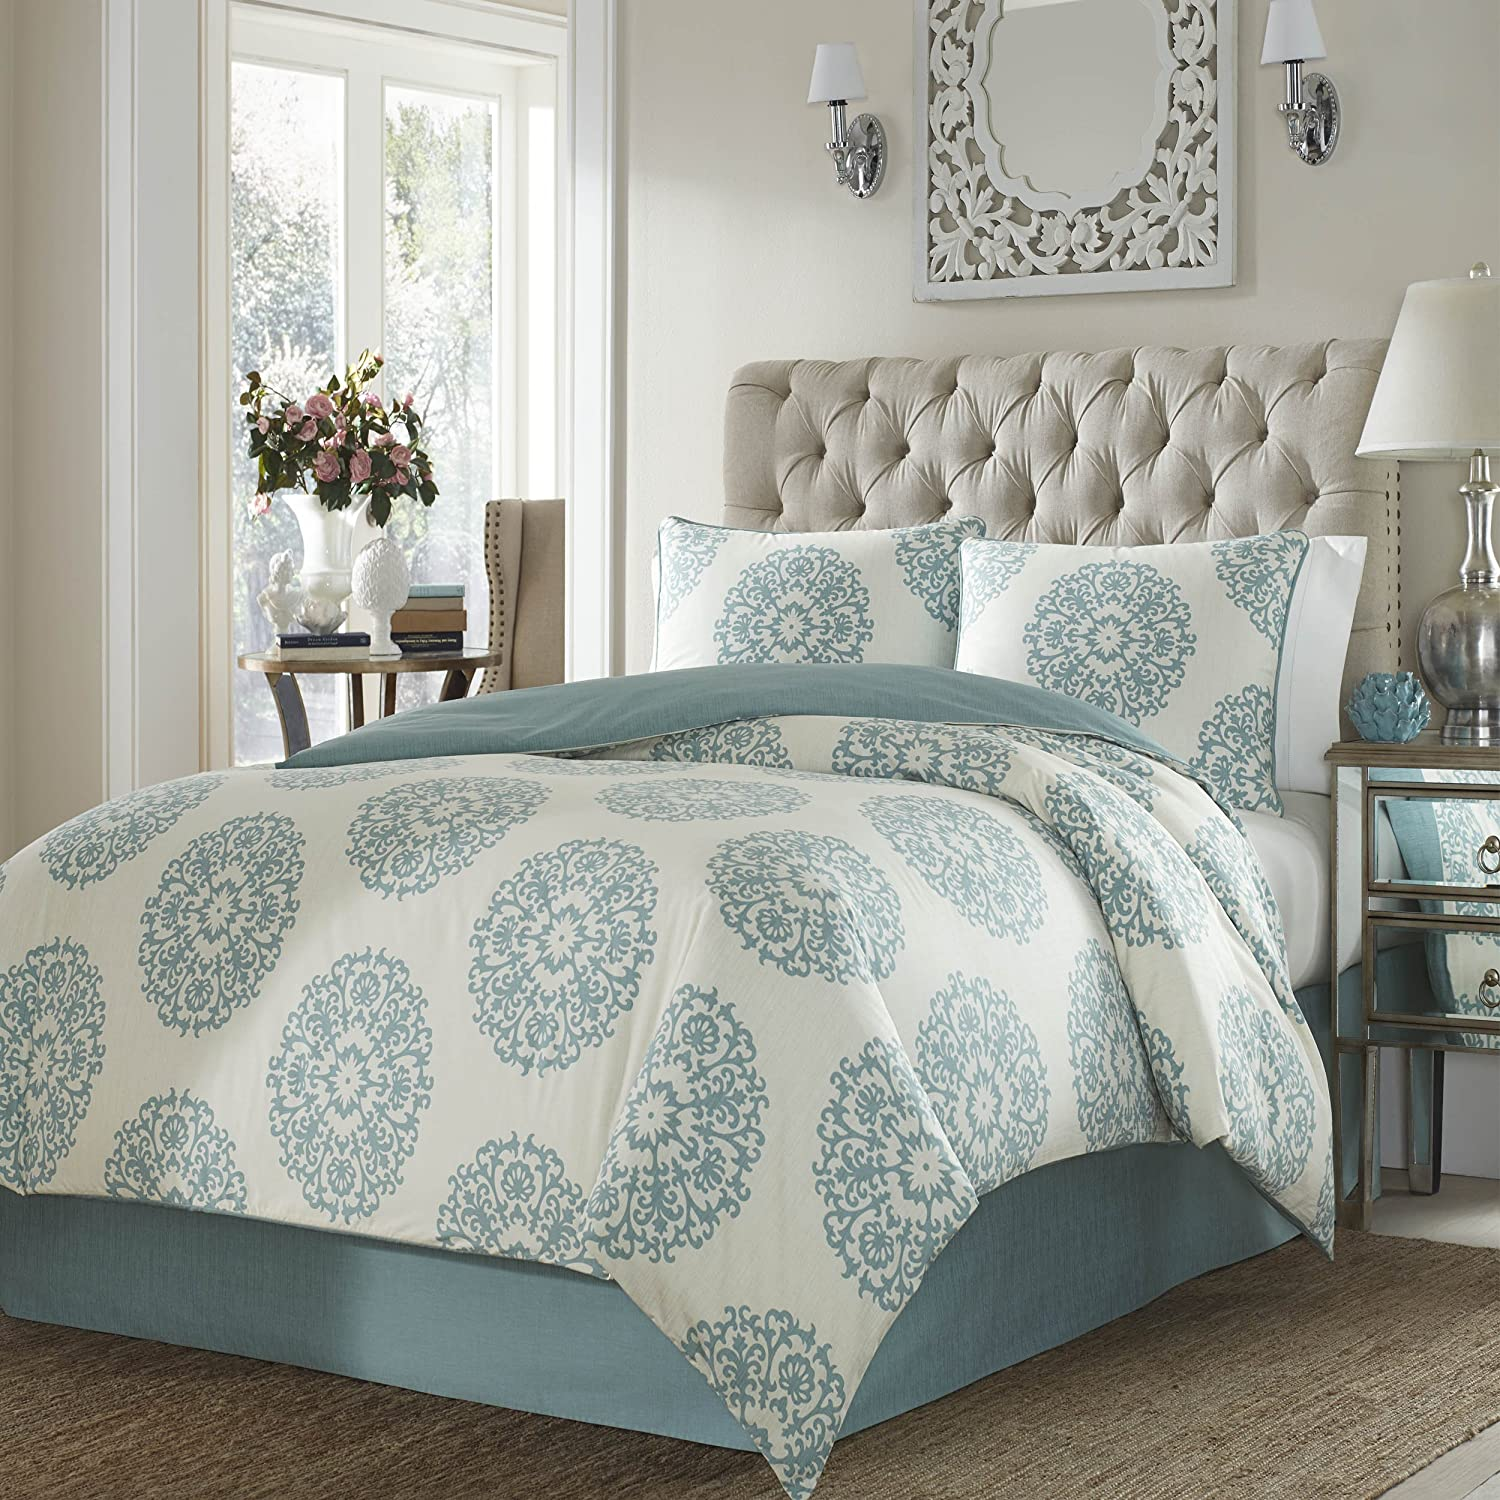 Stone Cottage Cotton Comforter Set, Full Queen, Bristol